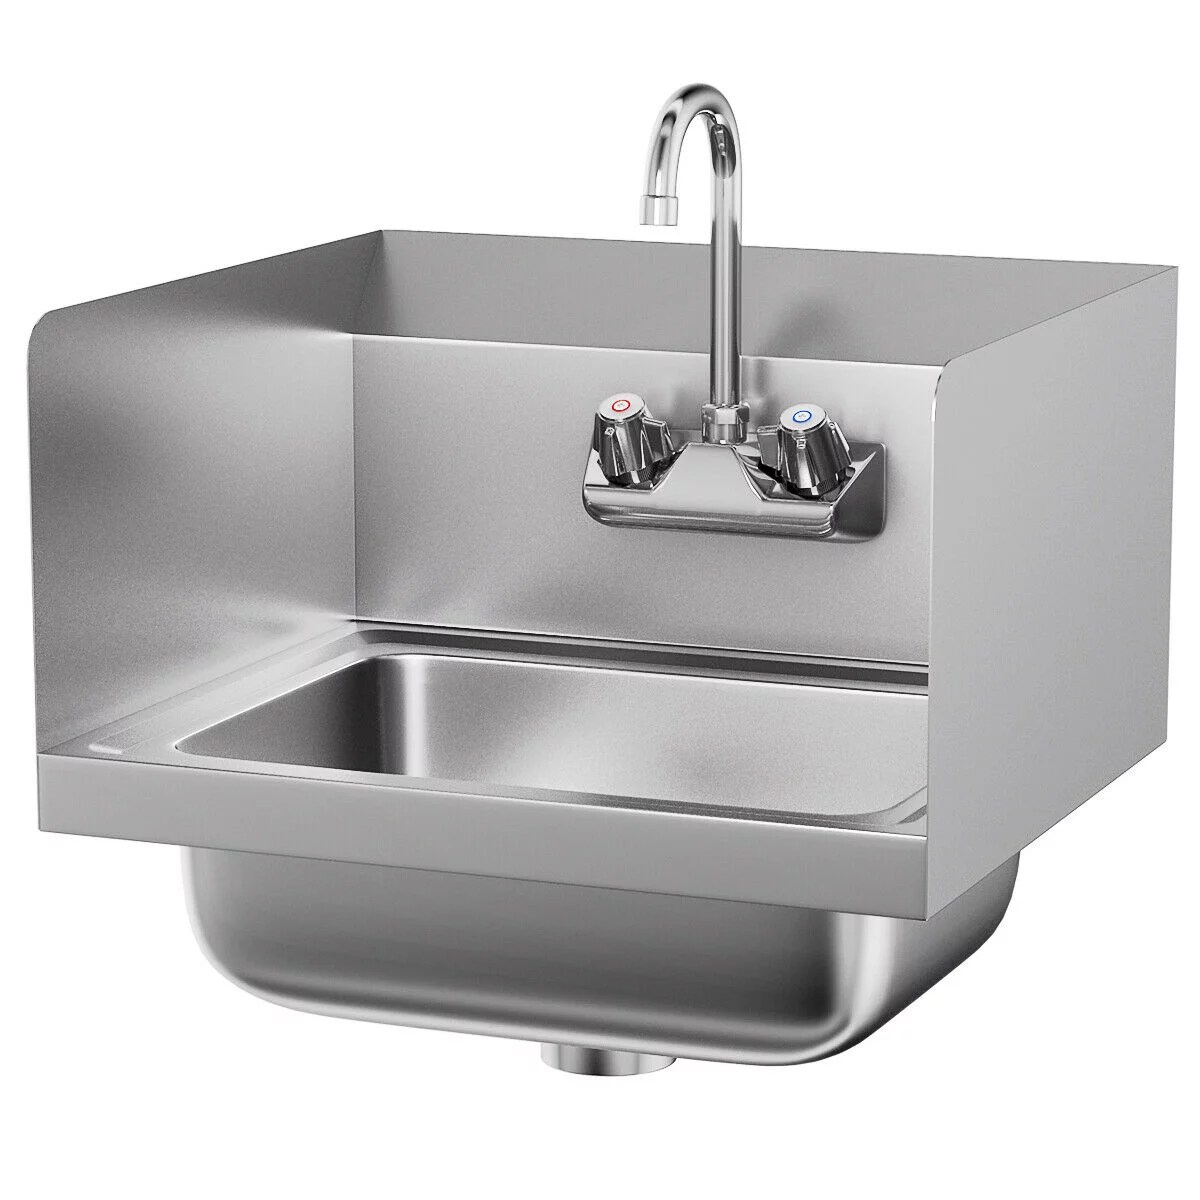 costway stainless steel hand washing sink nsf commercial with faucet and side splashes